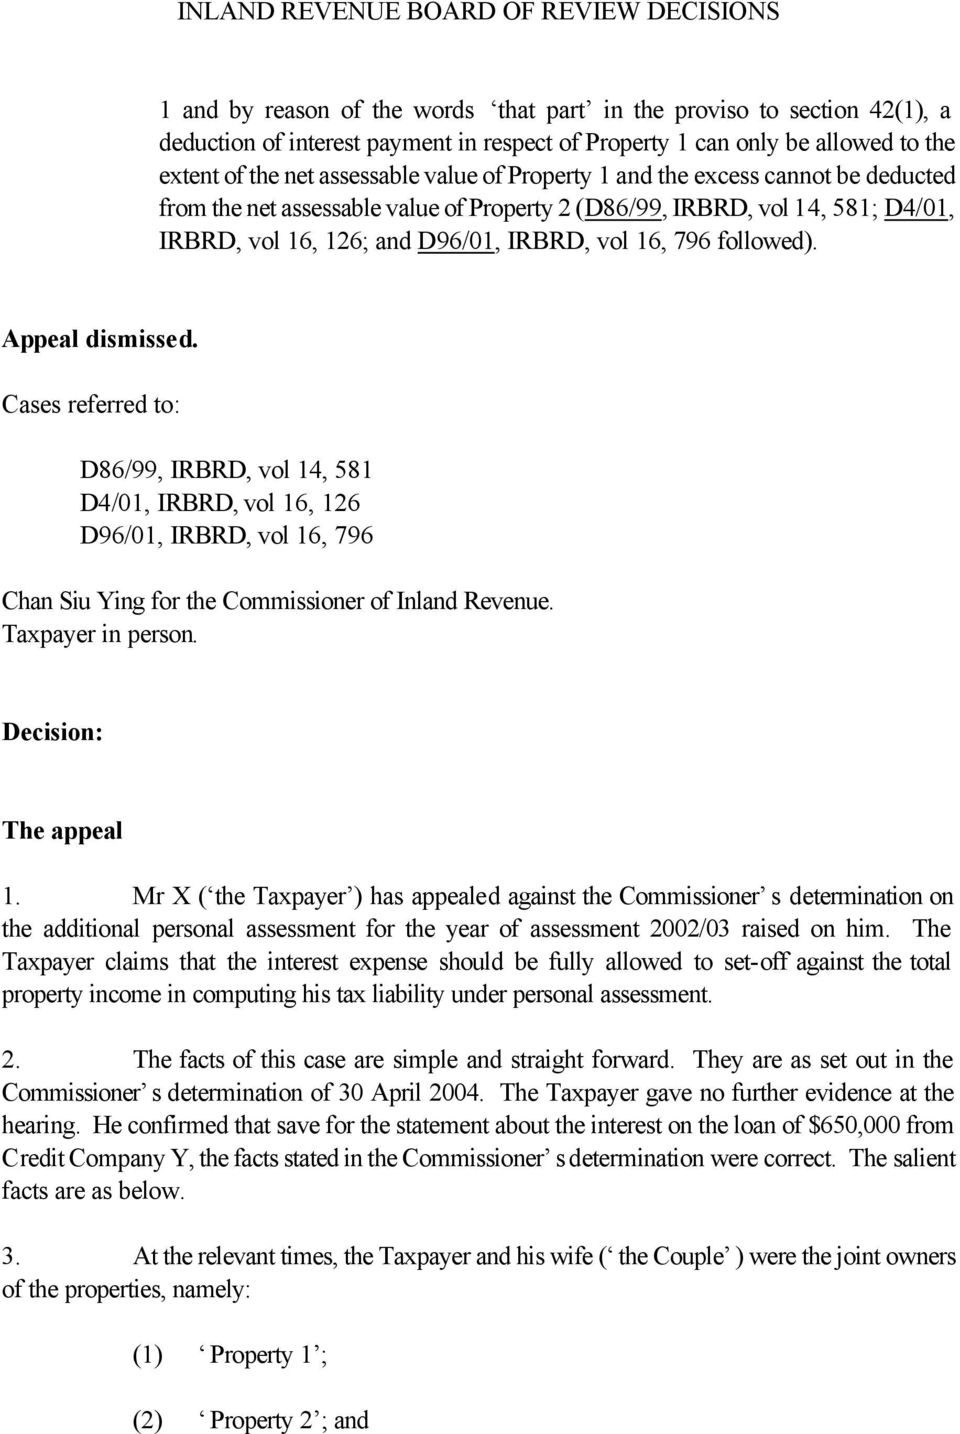 Appeal dismissed. Cases referred to: D86/99, IRBRD, vol 14, 581 D4/01, IRBRD, vol 16, 126 D96/01, IRBRD, vol 16, 796 Chan Siu Ying for the Commissioner of Inland Revenue. Taxpayer in person.